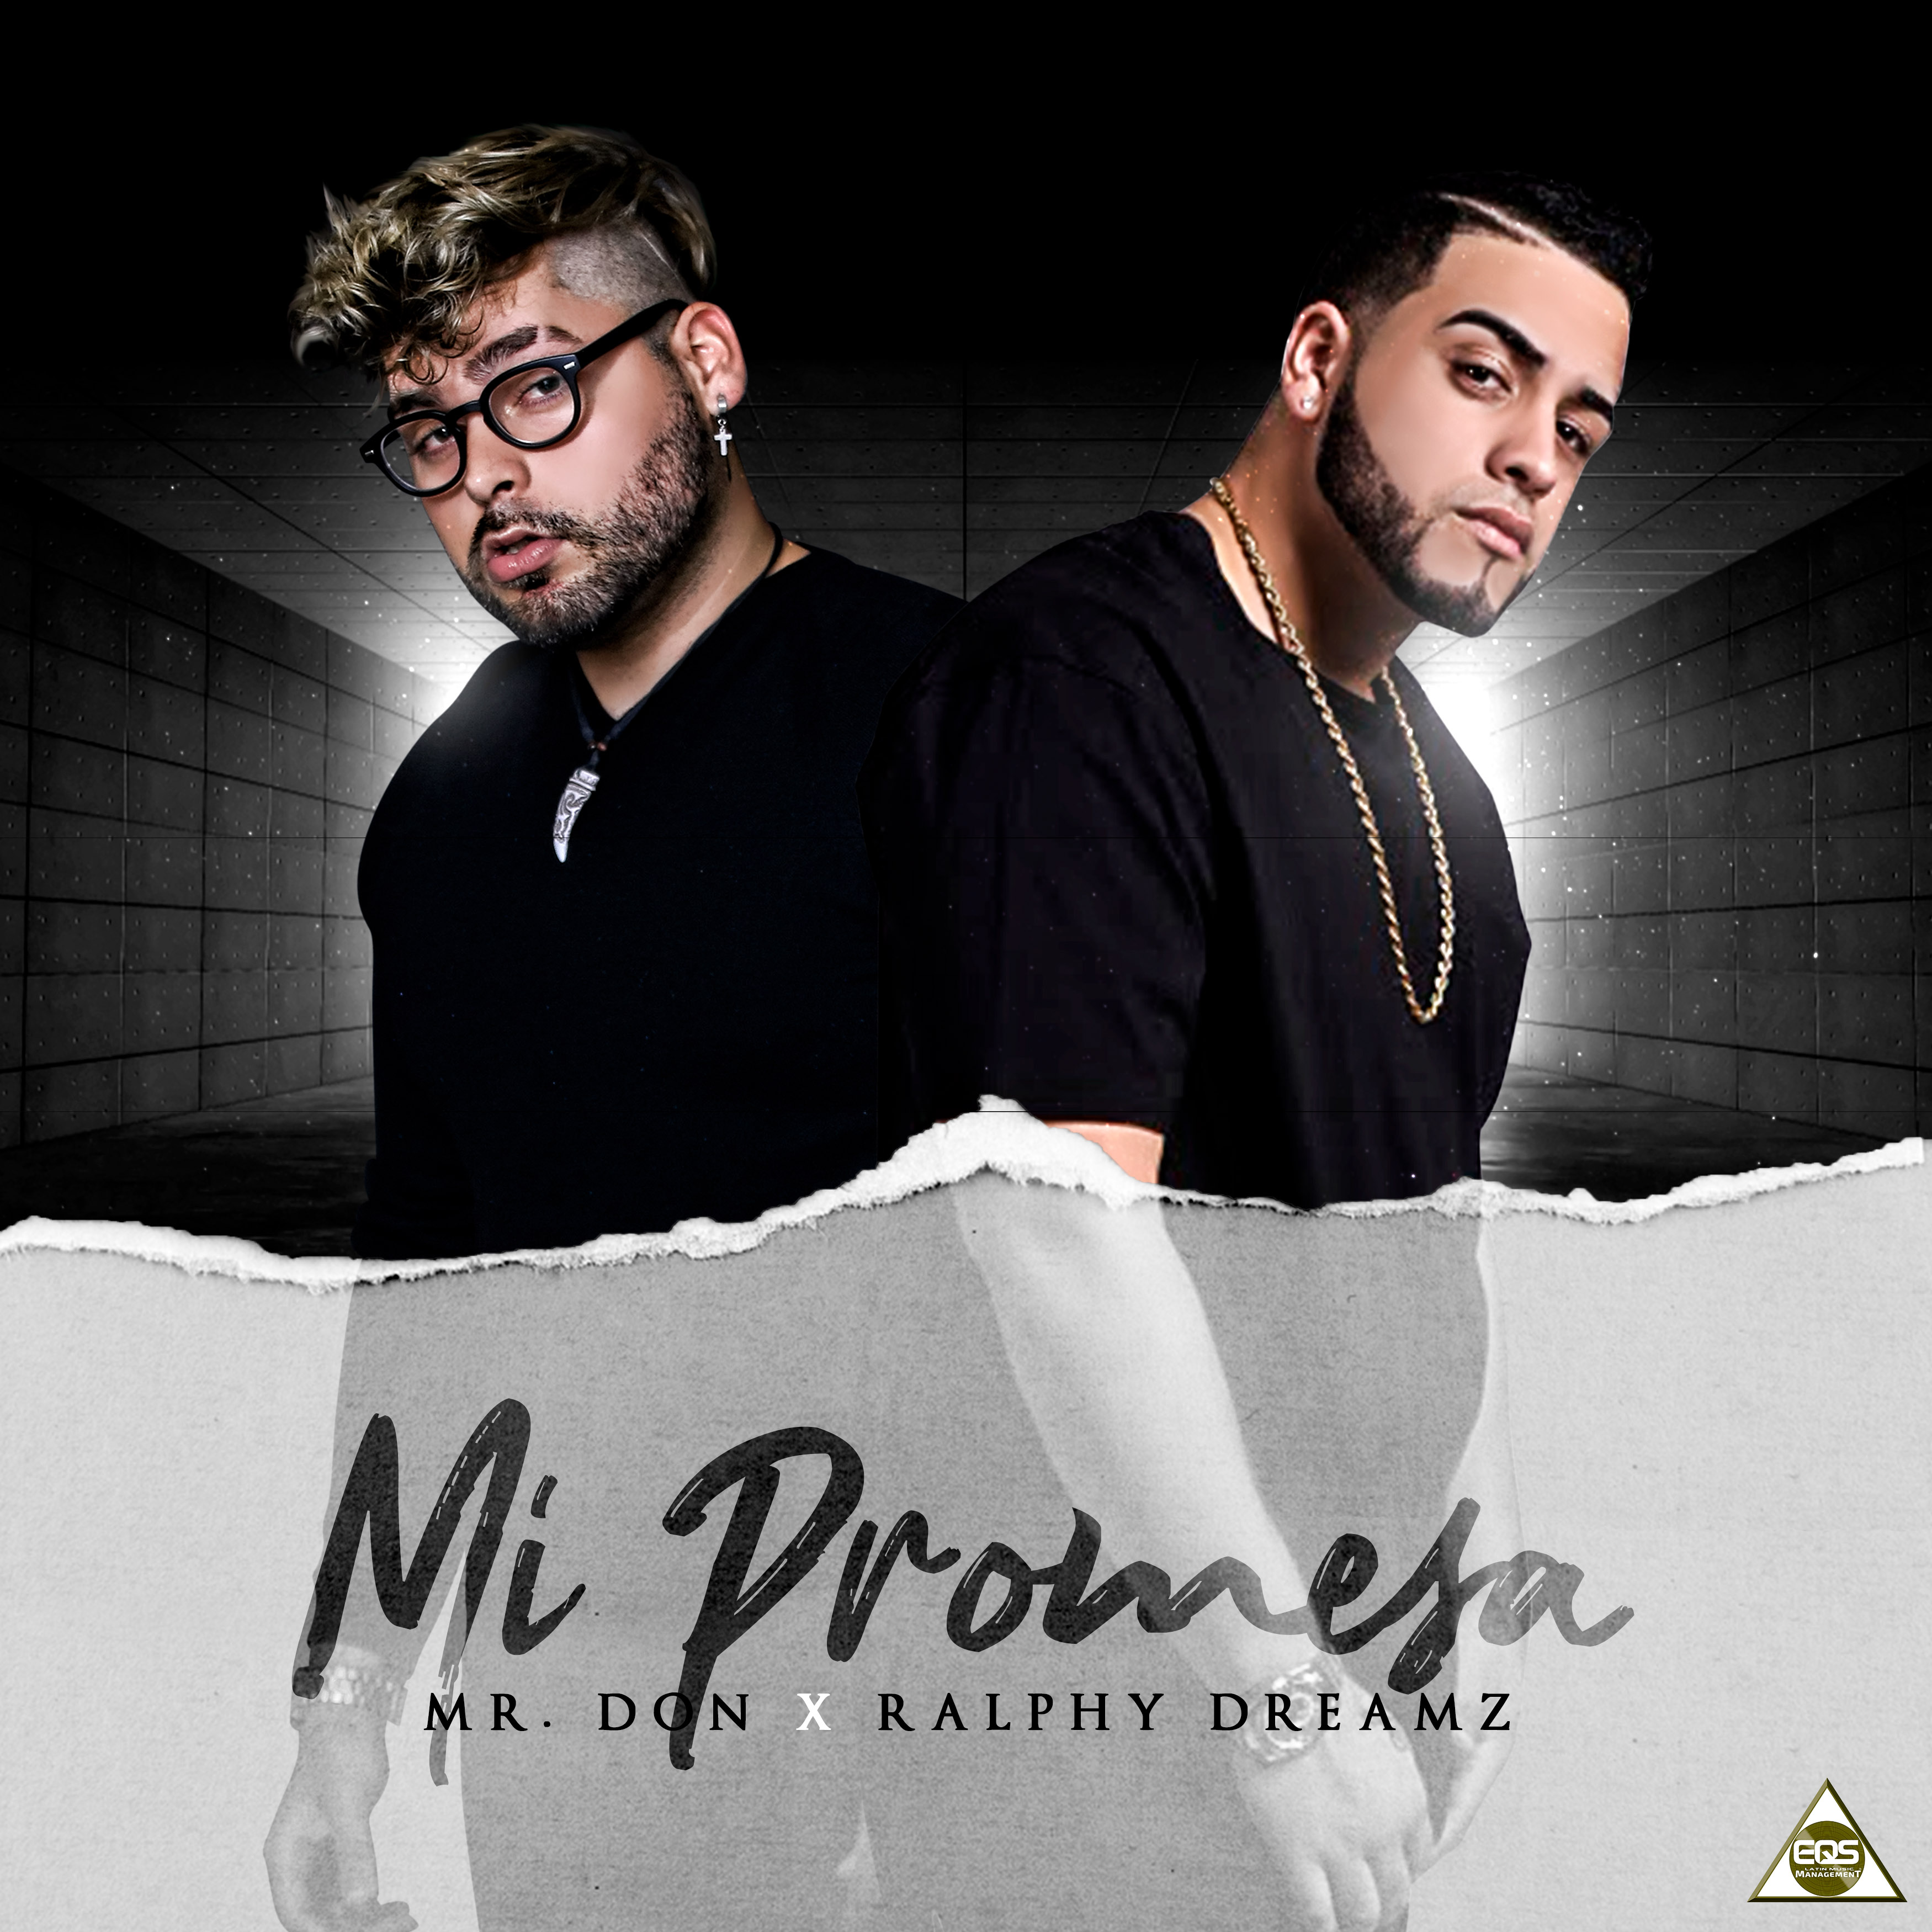 MI PROMESA - MR. DON X RALPLHY DREAMZ  .